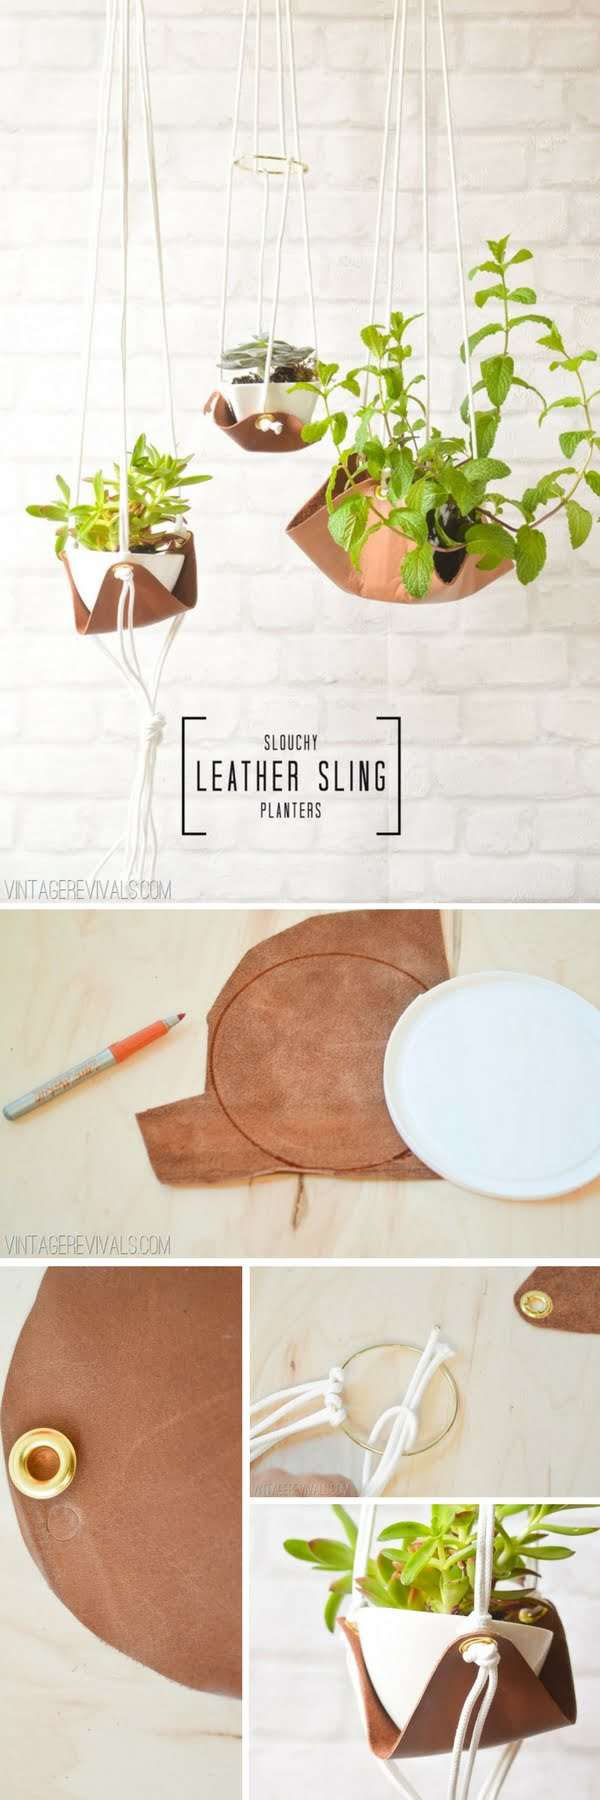 How to build DIY leather sling planters